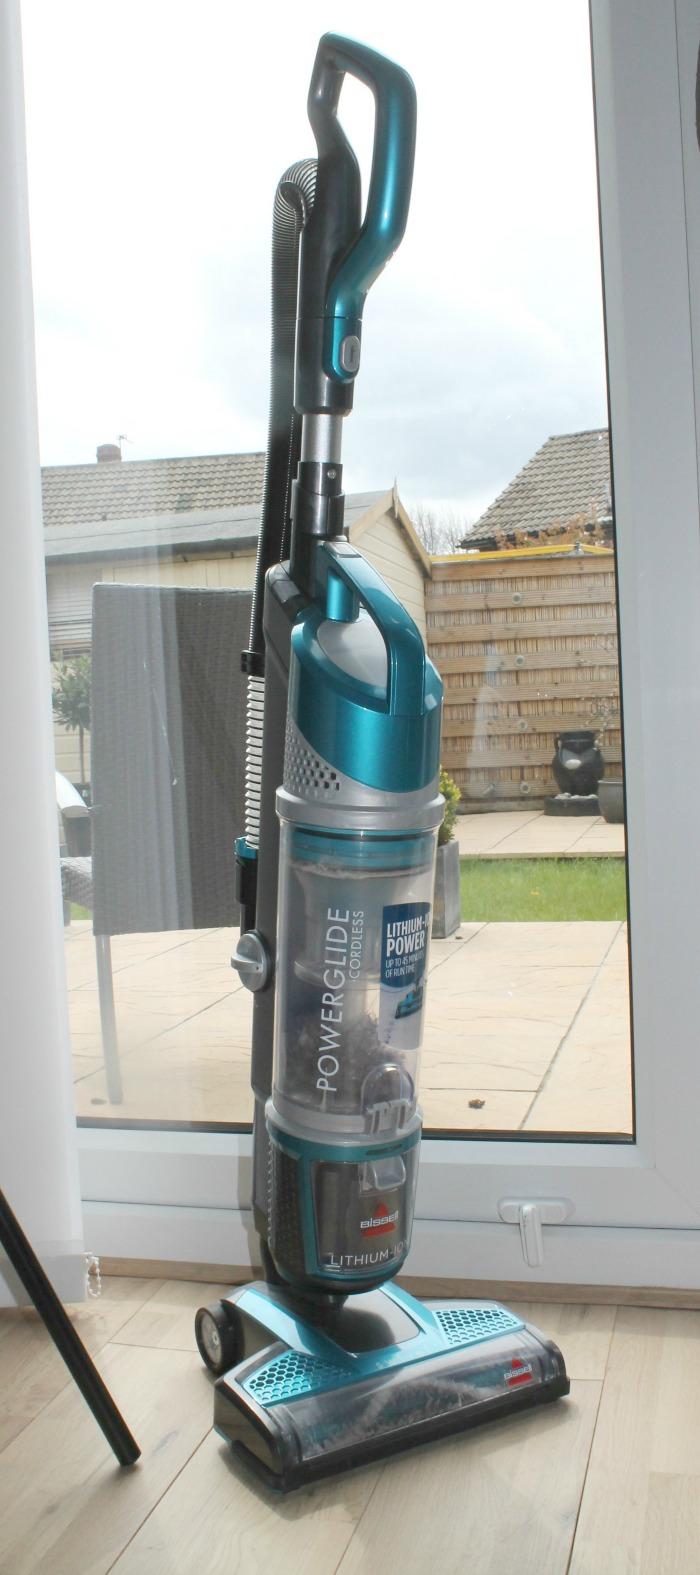 BISSELL Powerglide Cordless Vacuum Cleaner Review- upright vacuum